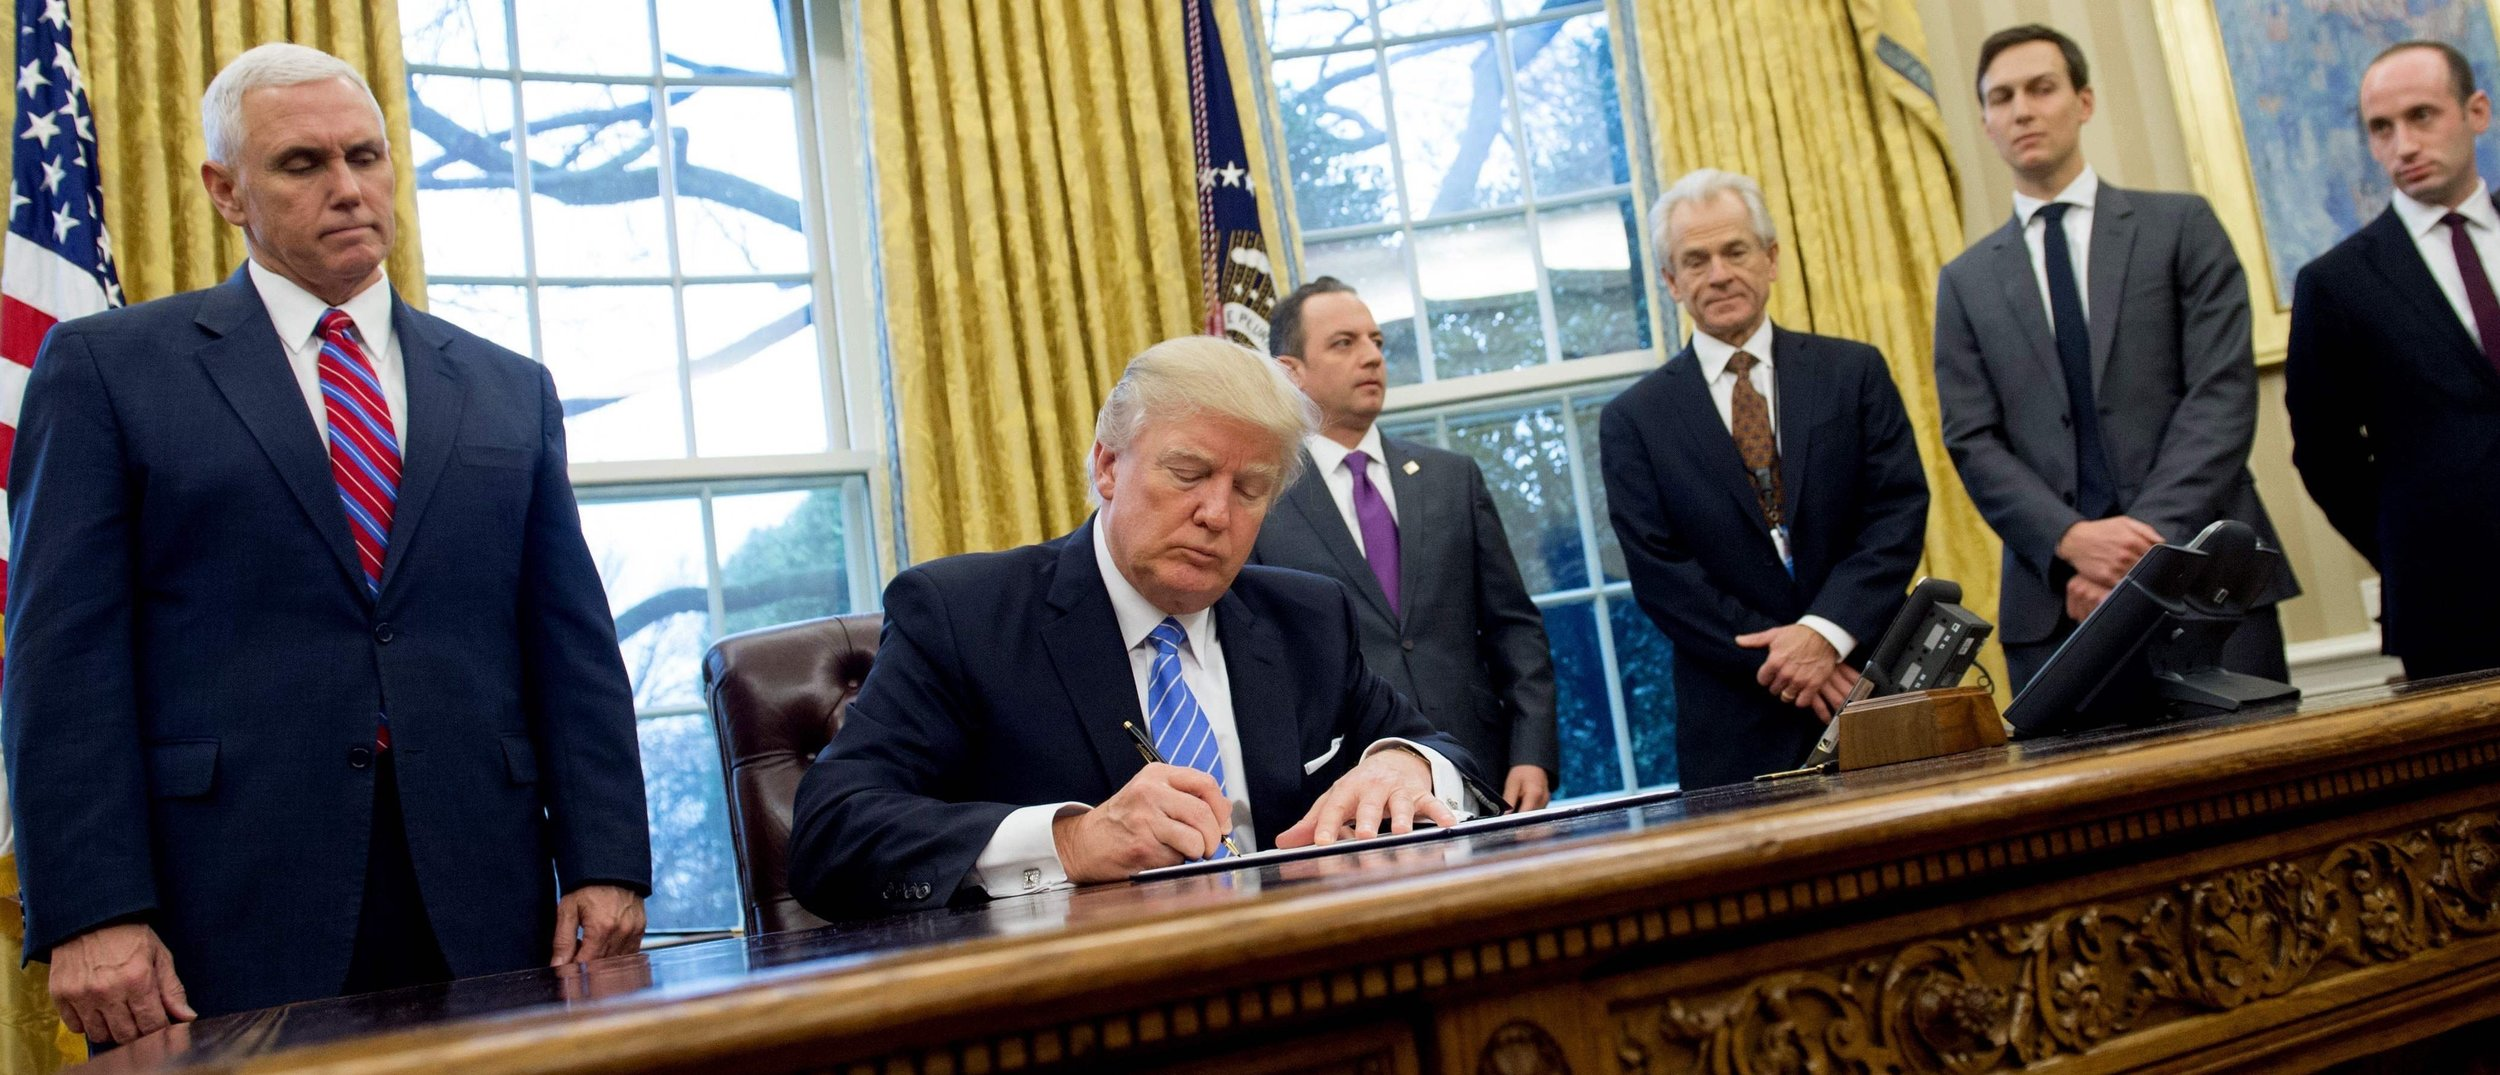 President Trump signing an executive order reinstating the Mexico City Policy on his first full day in office ( Image )